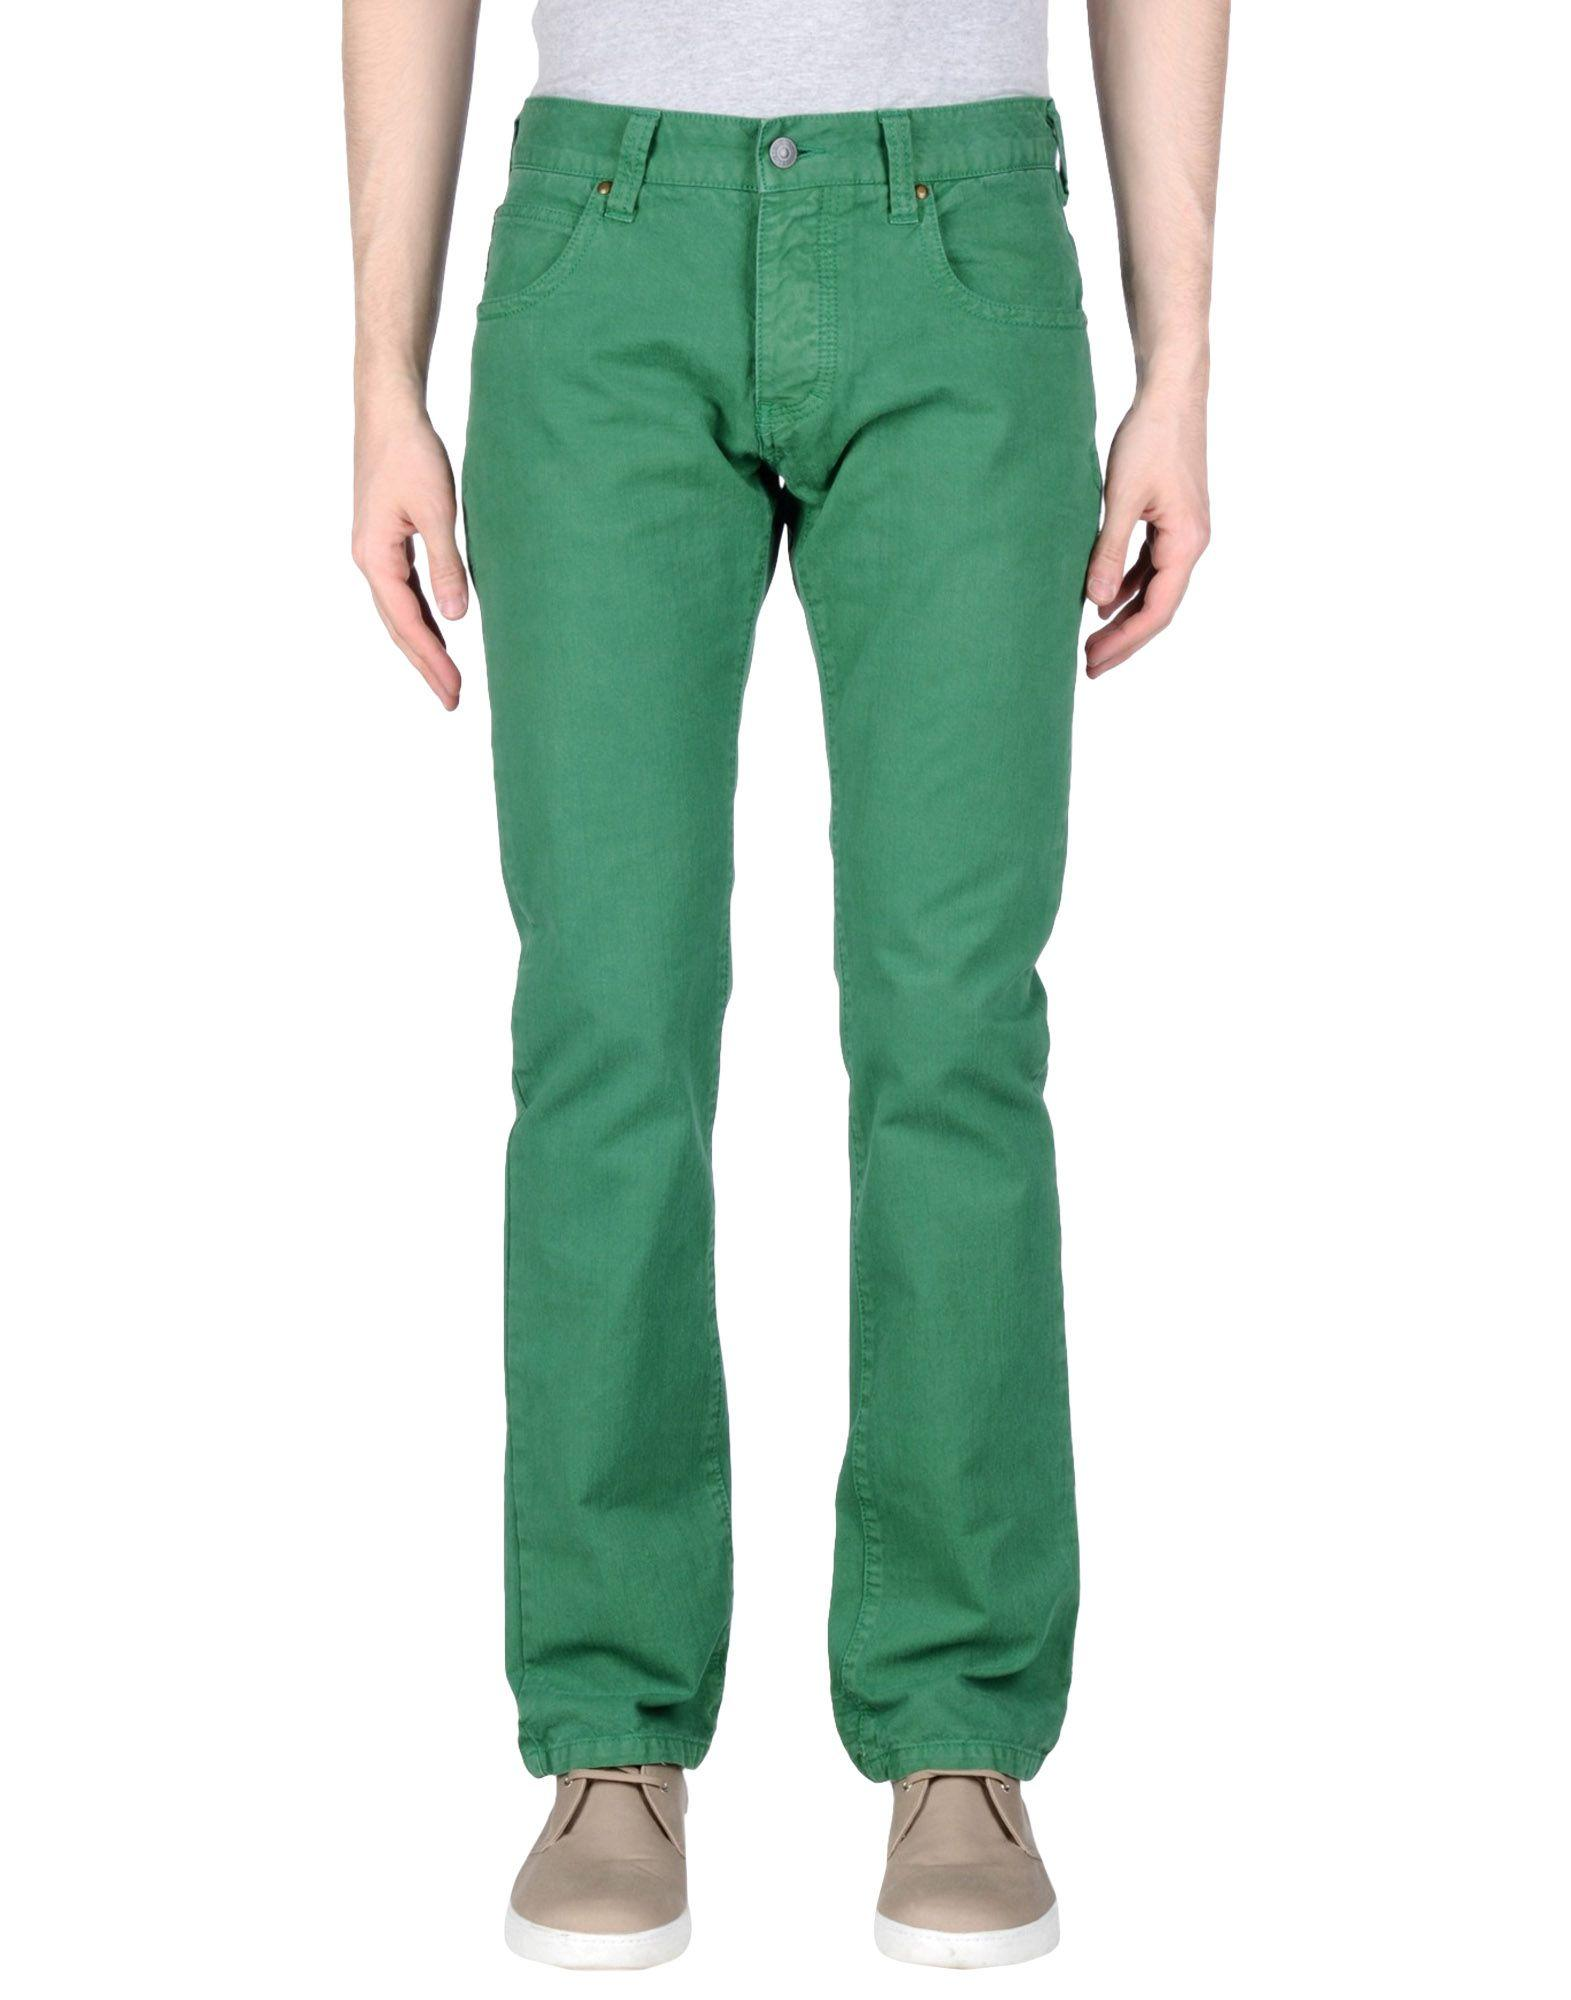 Shop green denim skinny jeans at Neiman Marcus, where you will find free shipping on the latest in fashion from top designers.